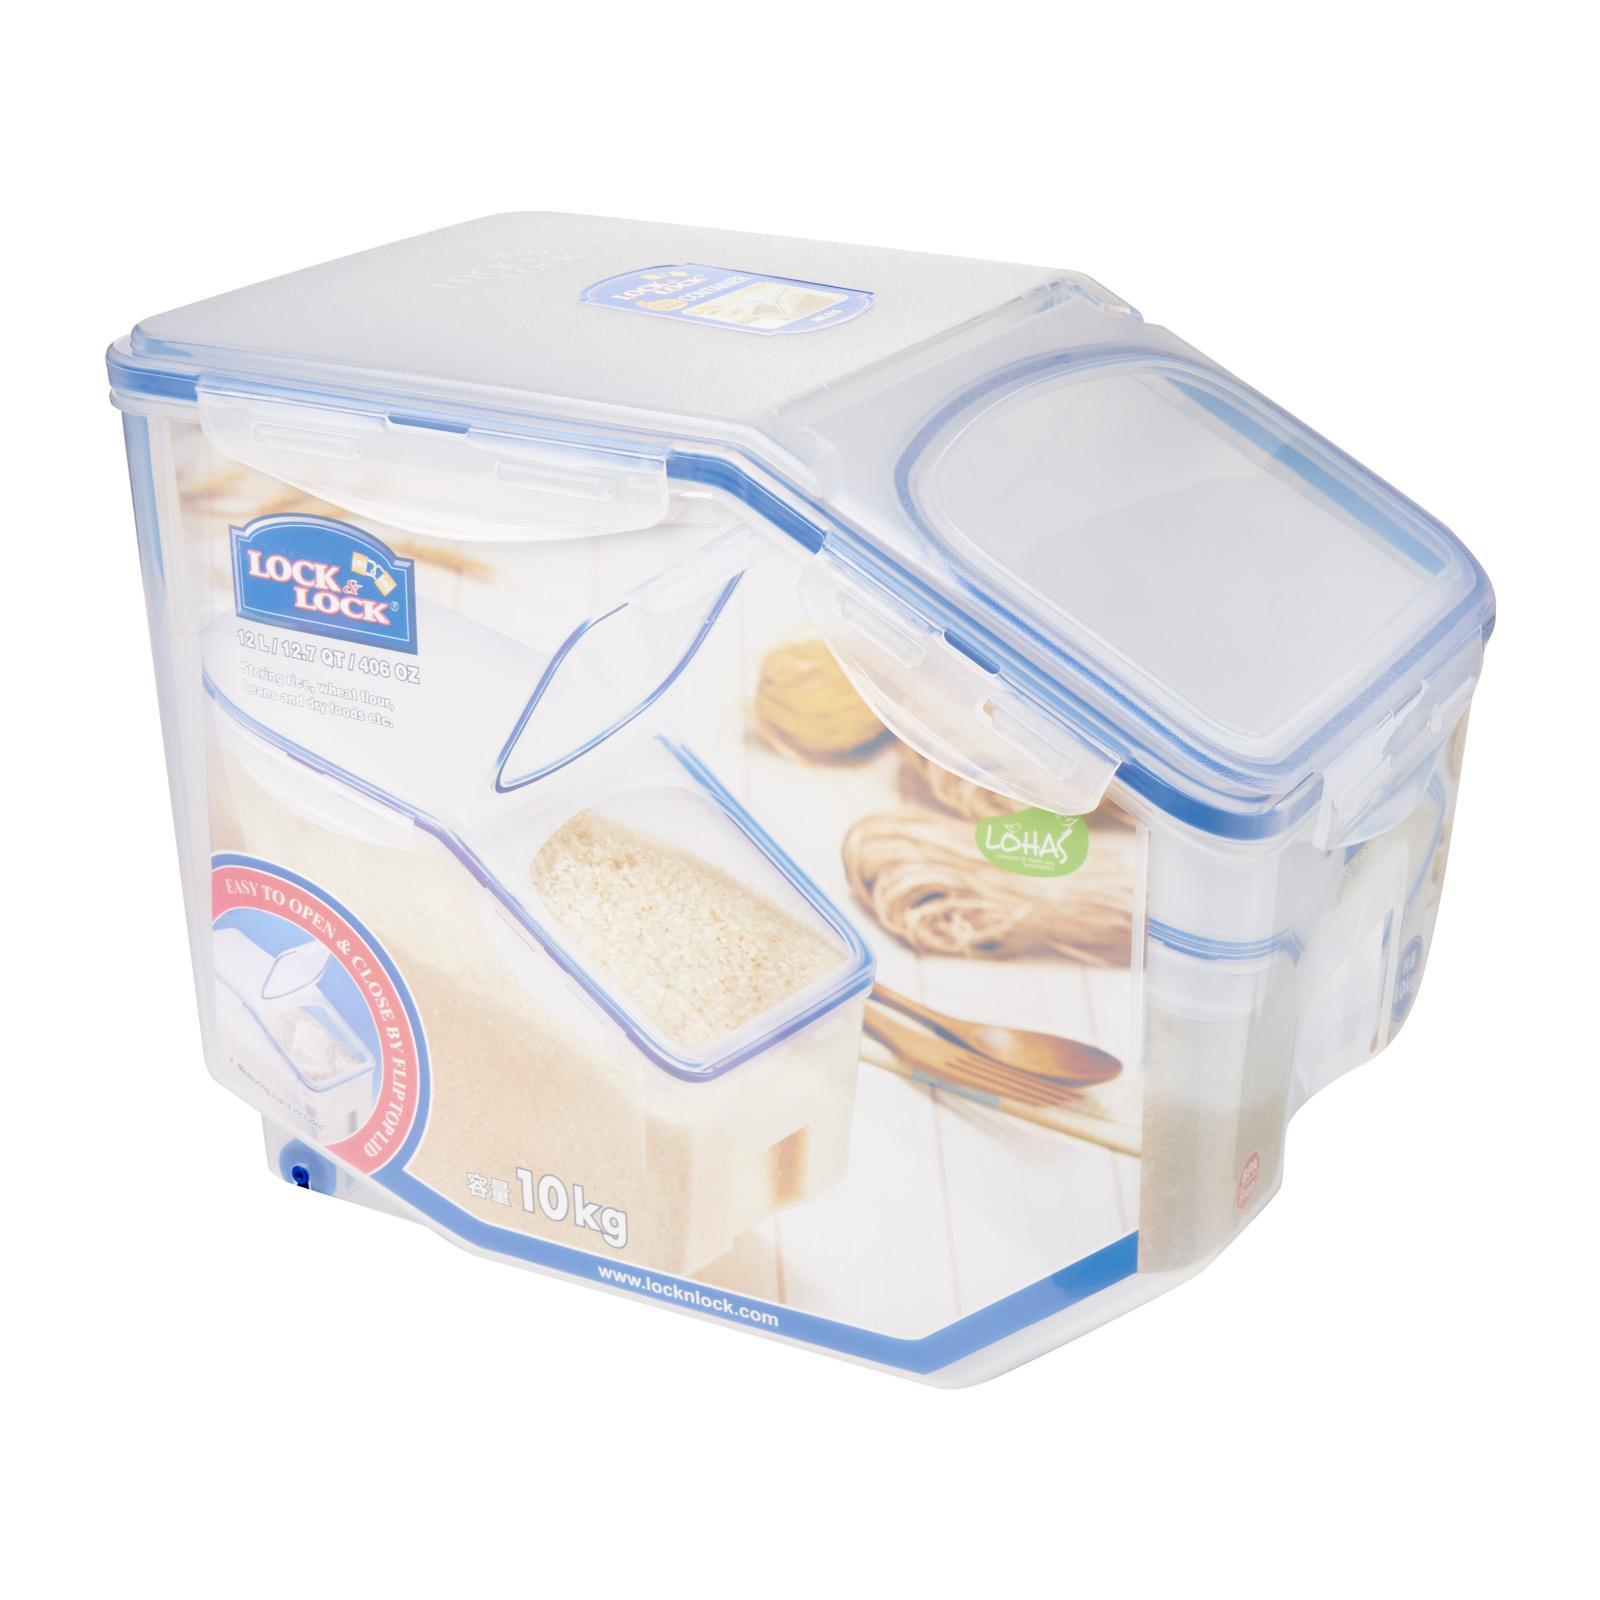 Lock & Lock Rectangular Classic Food Container 3.4L With Divider